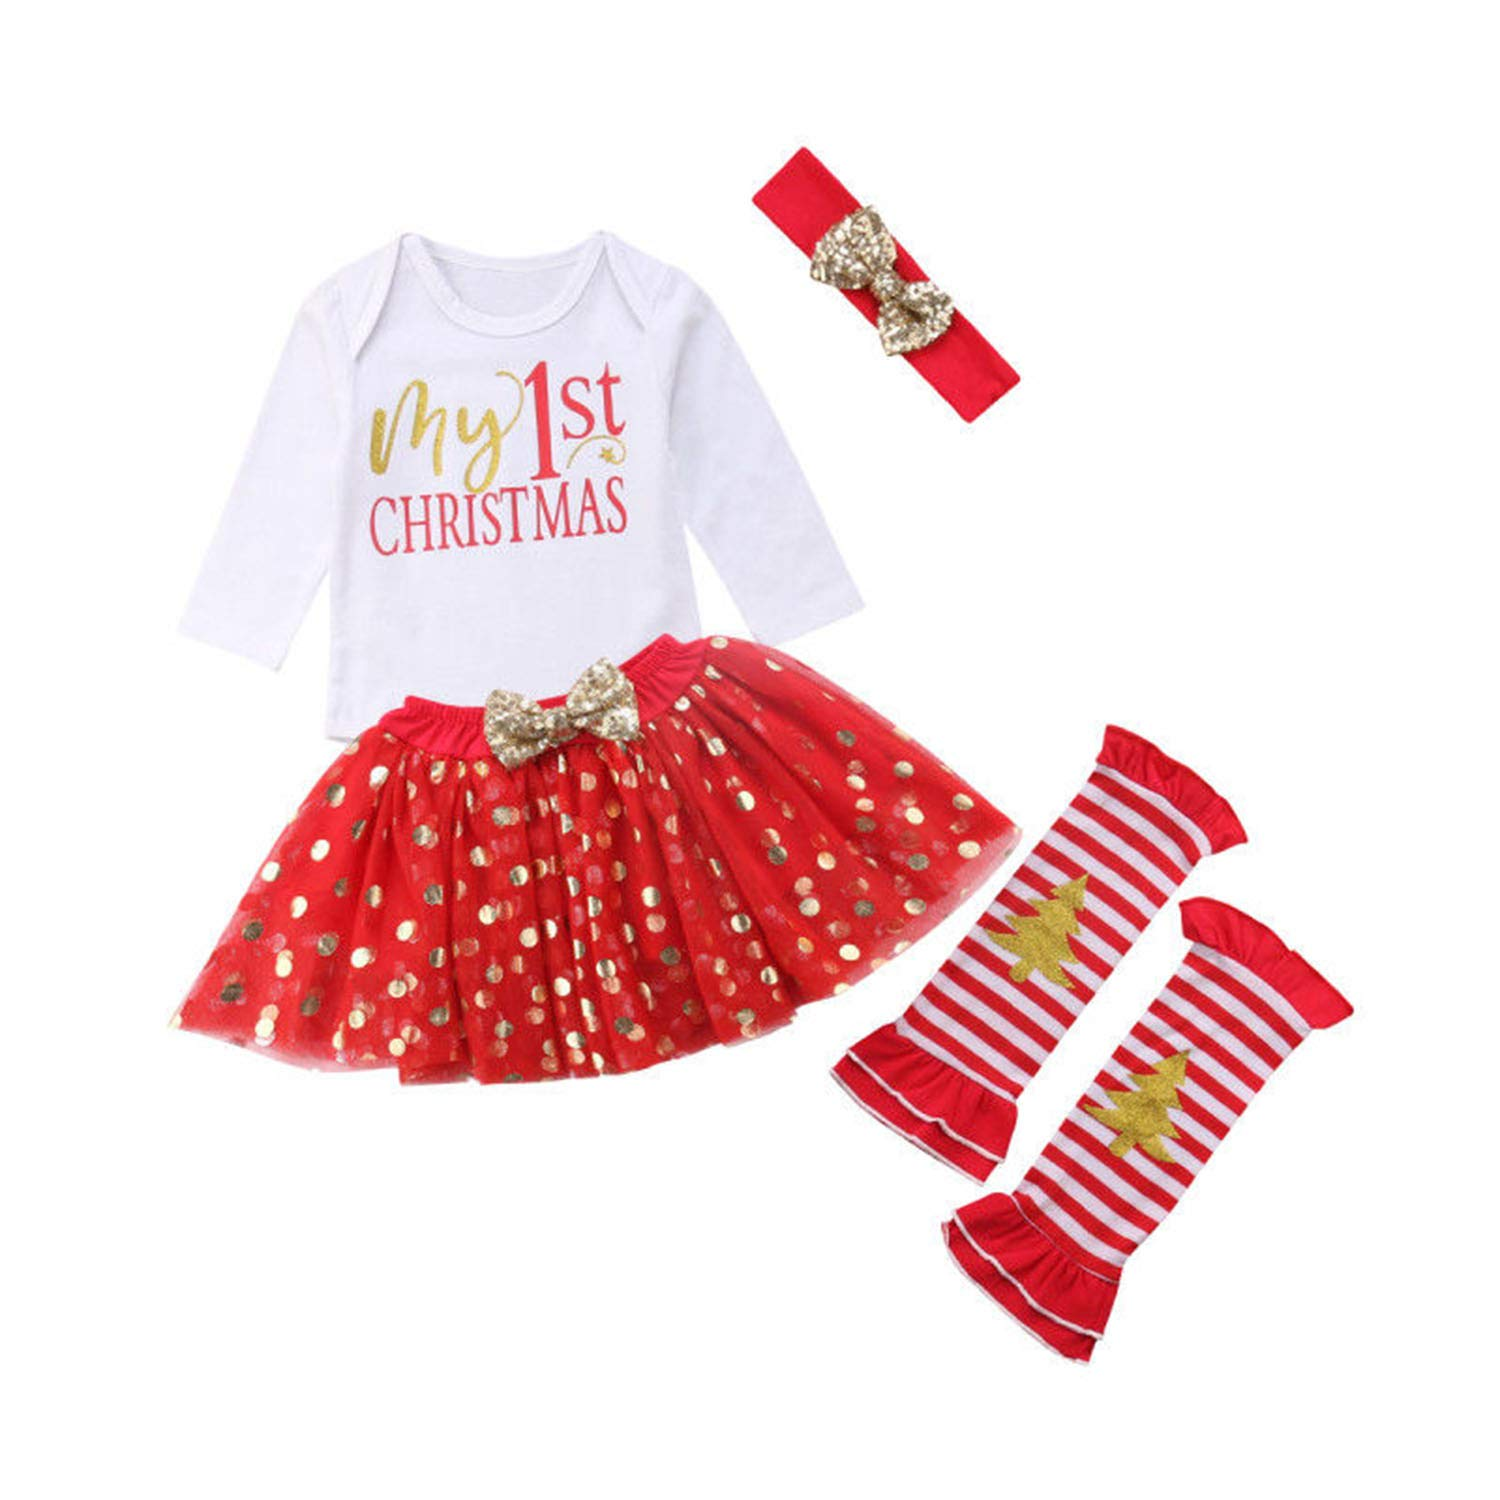 WIFORNT Baby Girls My 1st Christmas Outfits Romper Headband Leg Warmer Tutu Dress up